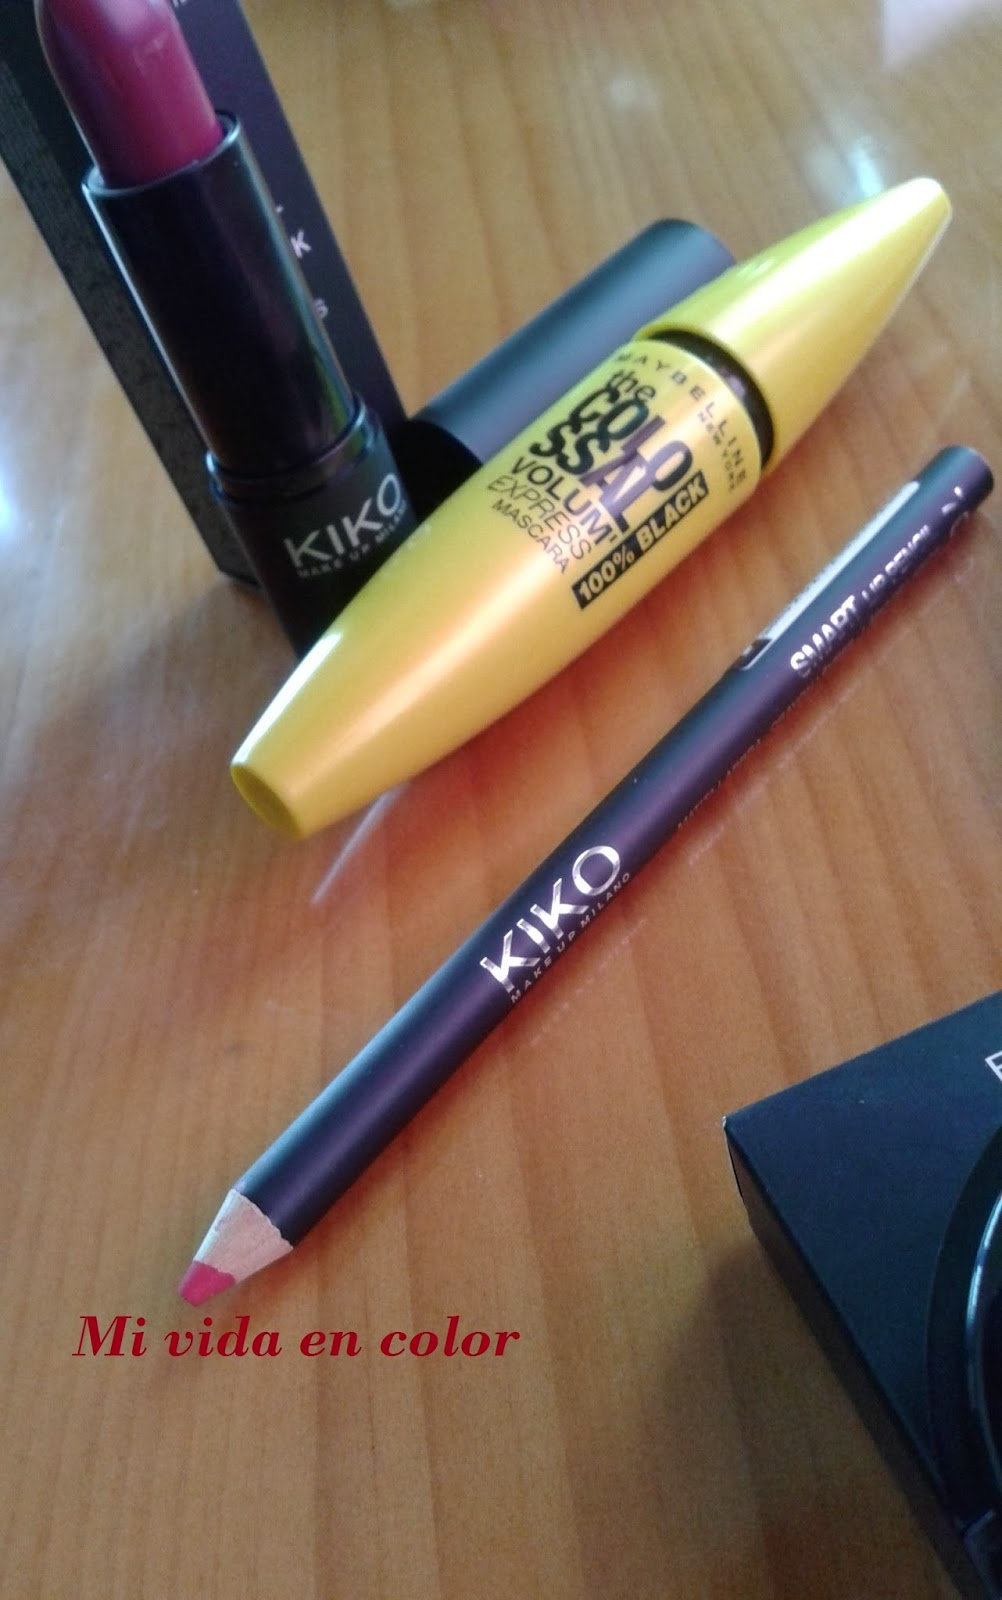 haul-review-swatches maybelline colossal volum express 100%black labial 914 kiko sombra 122 KIKO perfiladores KIKO 709710